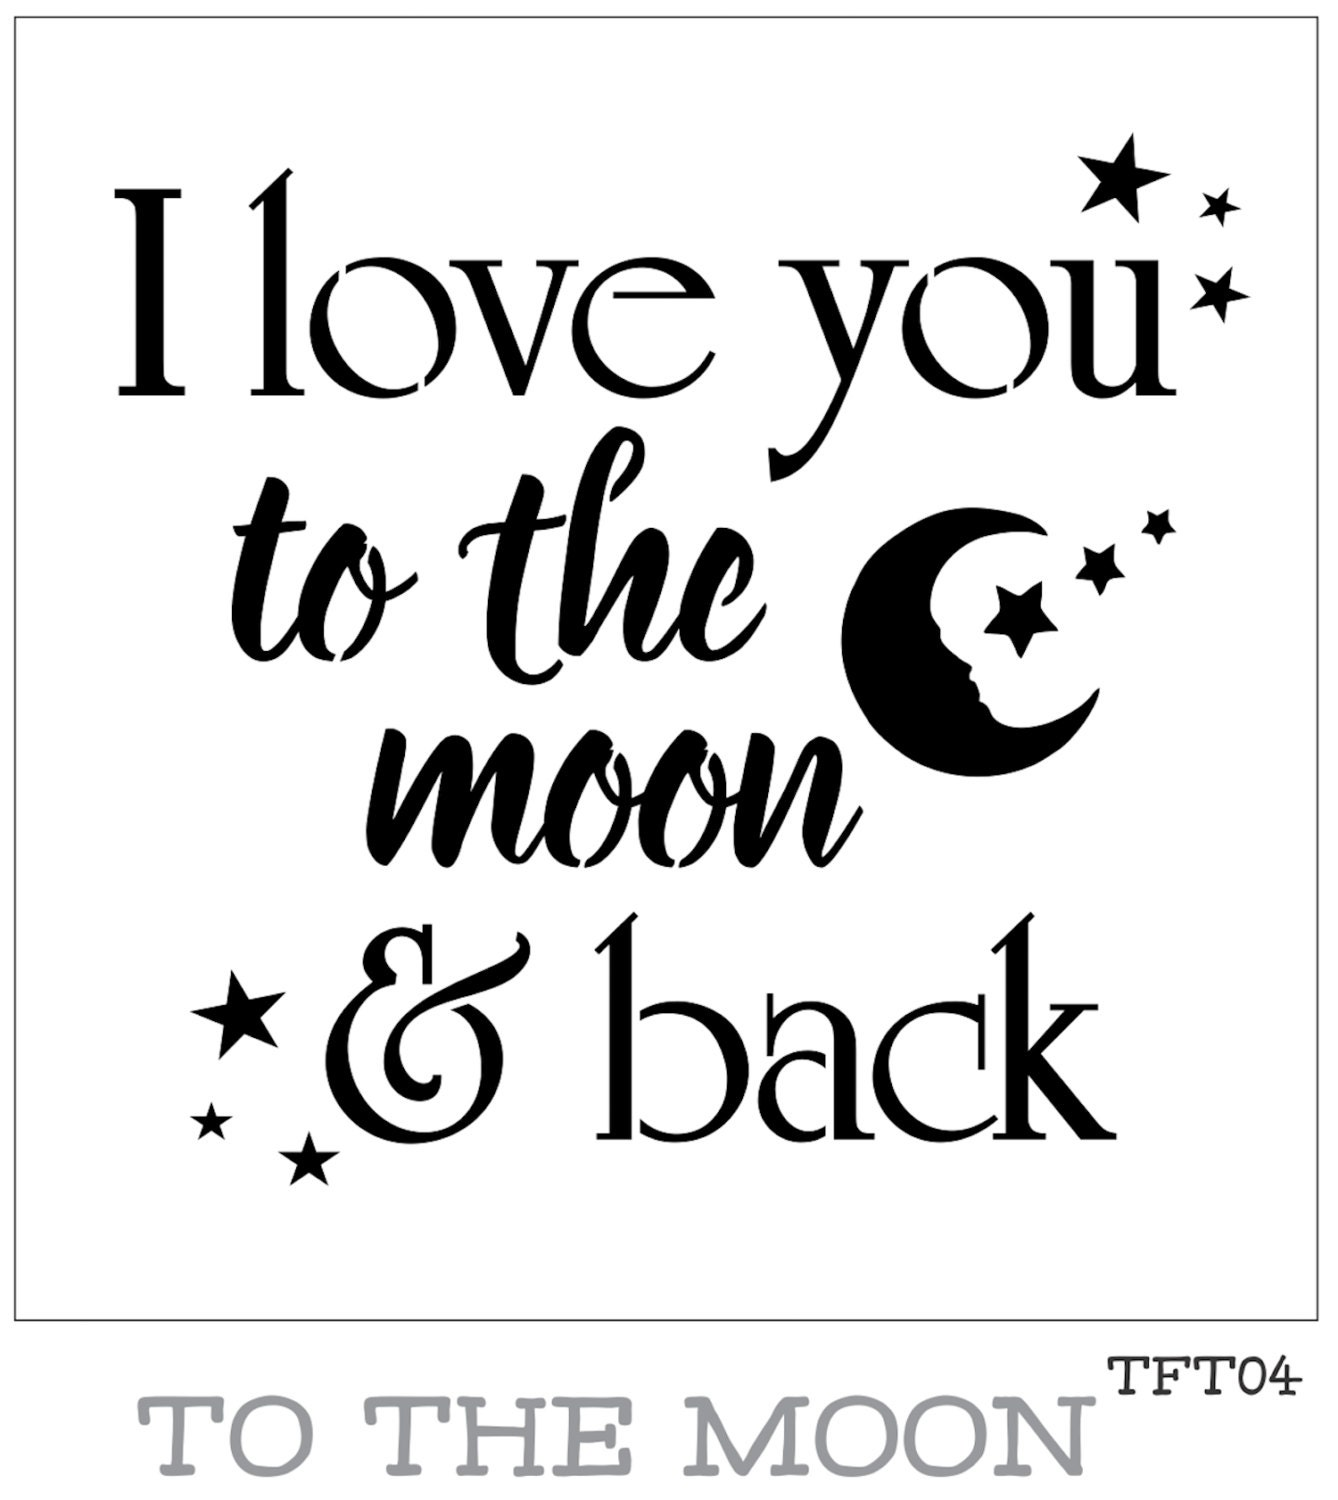 I Love You To The Moon And Back: I Love You To The Moon And Back Furniture Or Wall Stencil